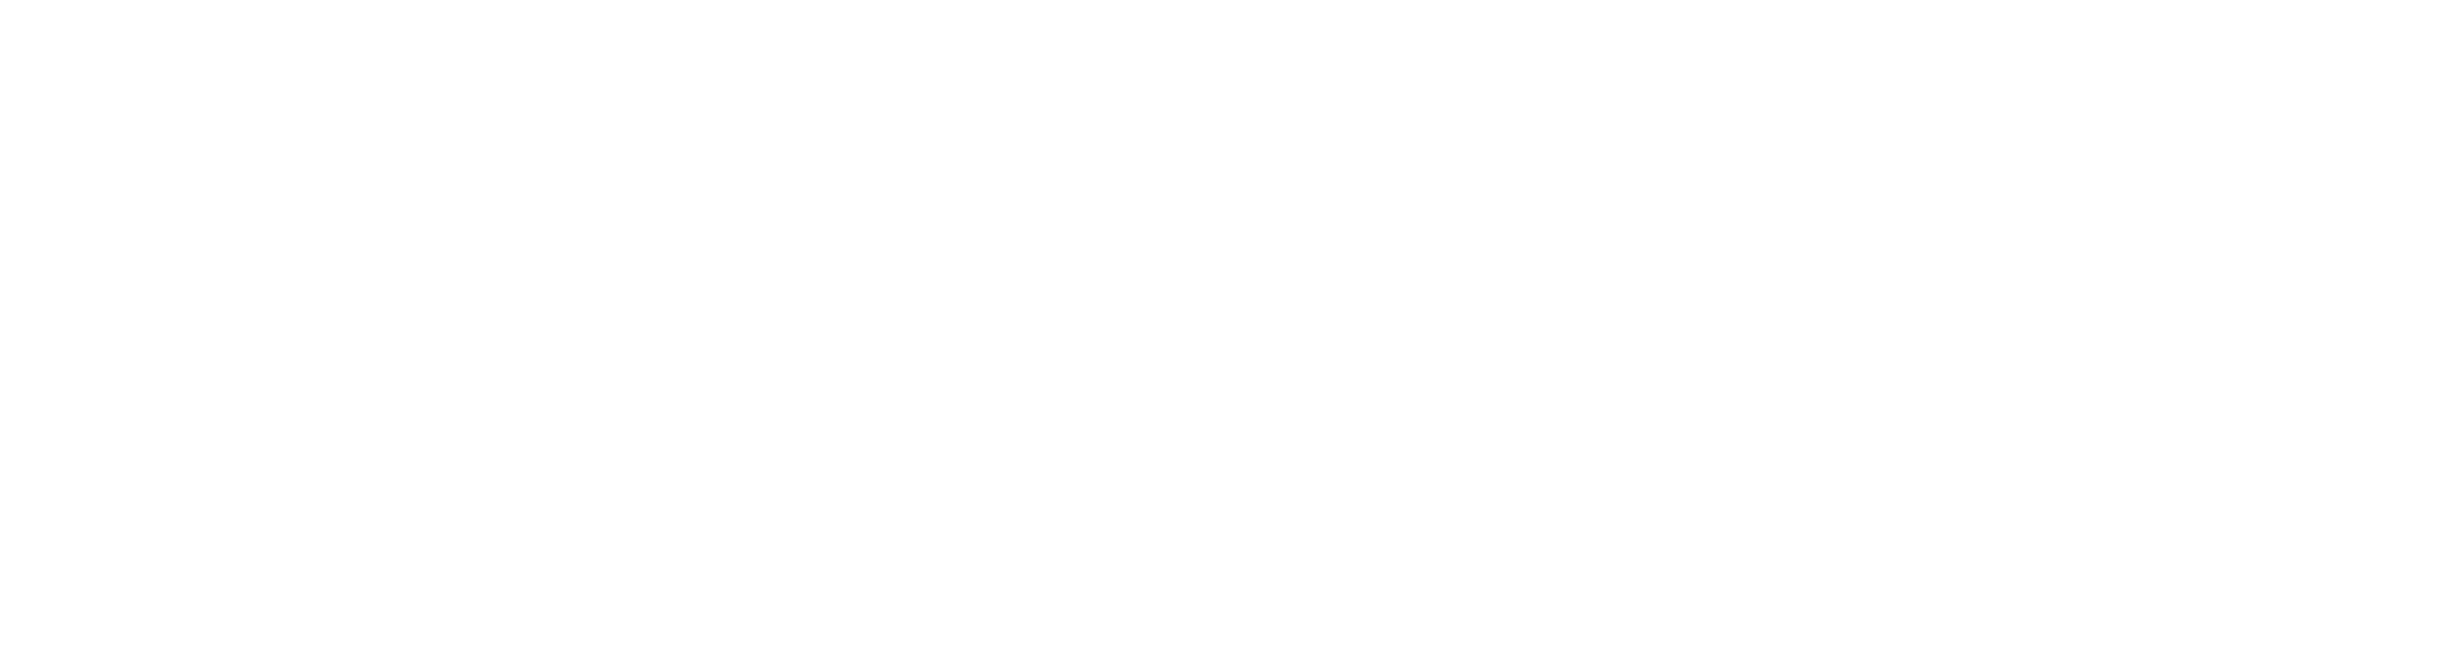 Clear Horizon Projects - Discounted Dental Health Services - Login